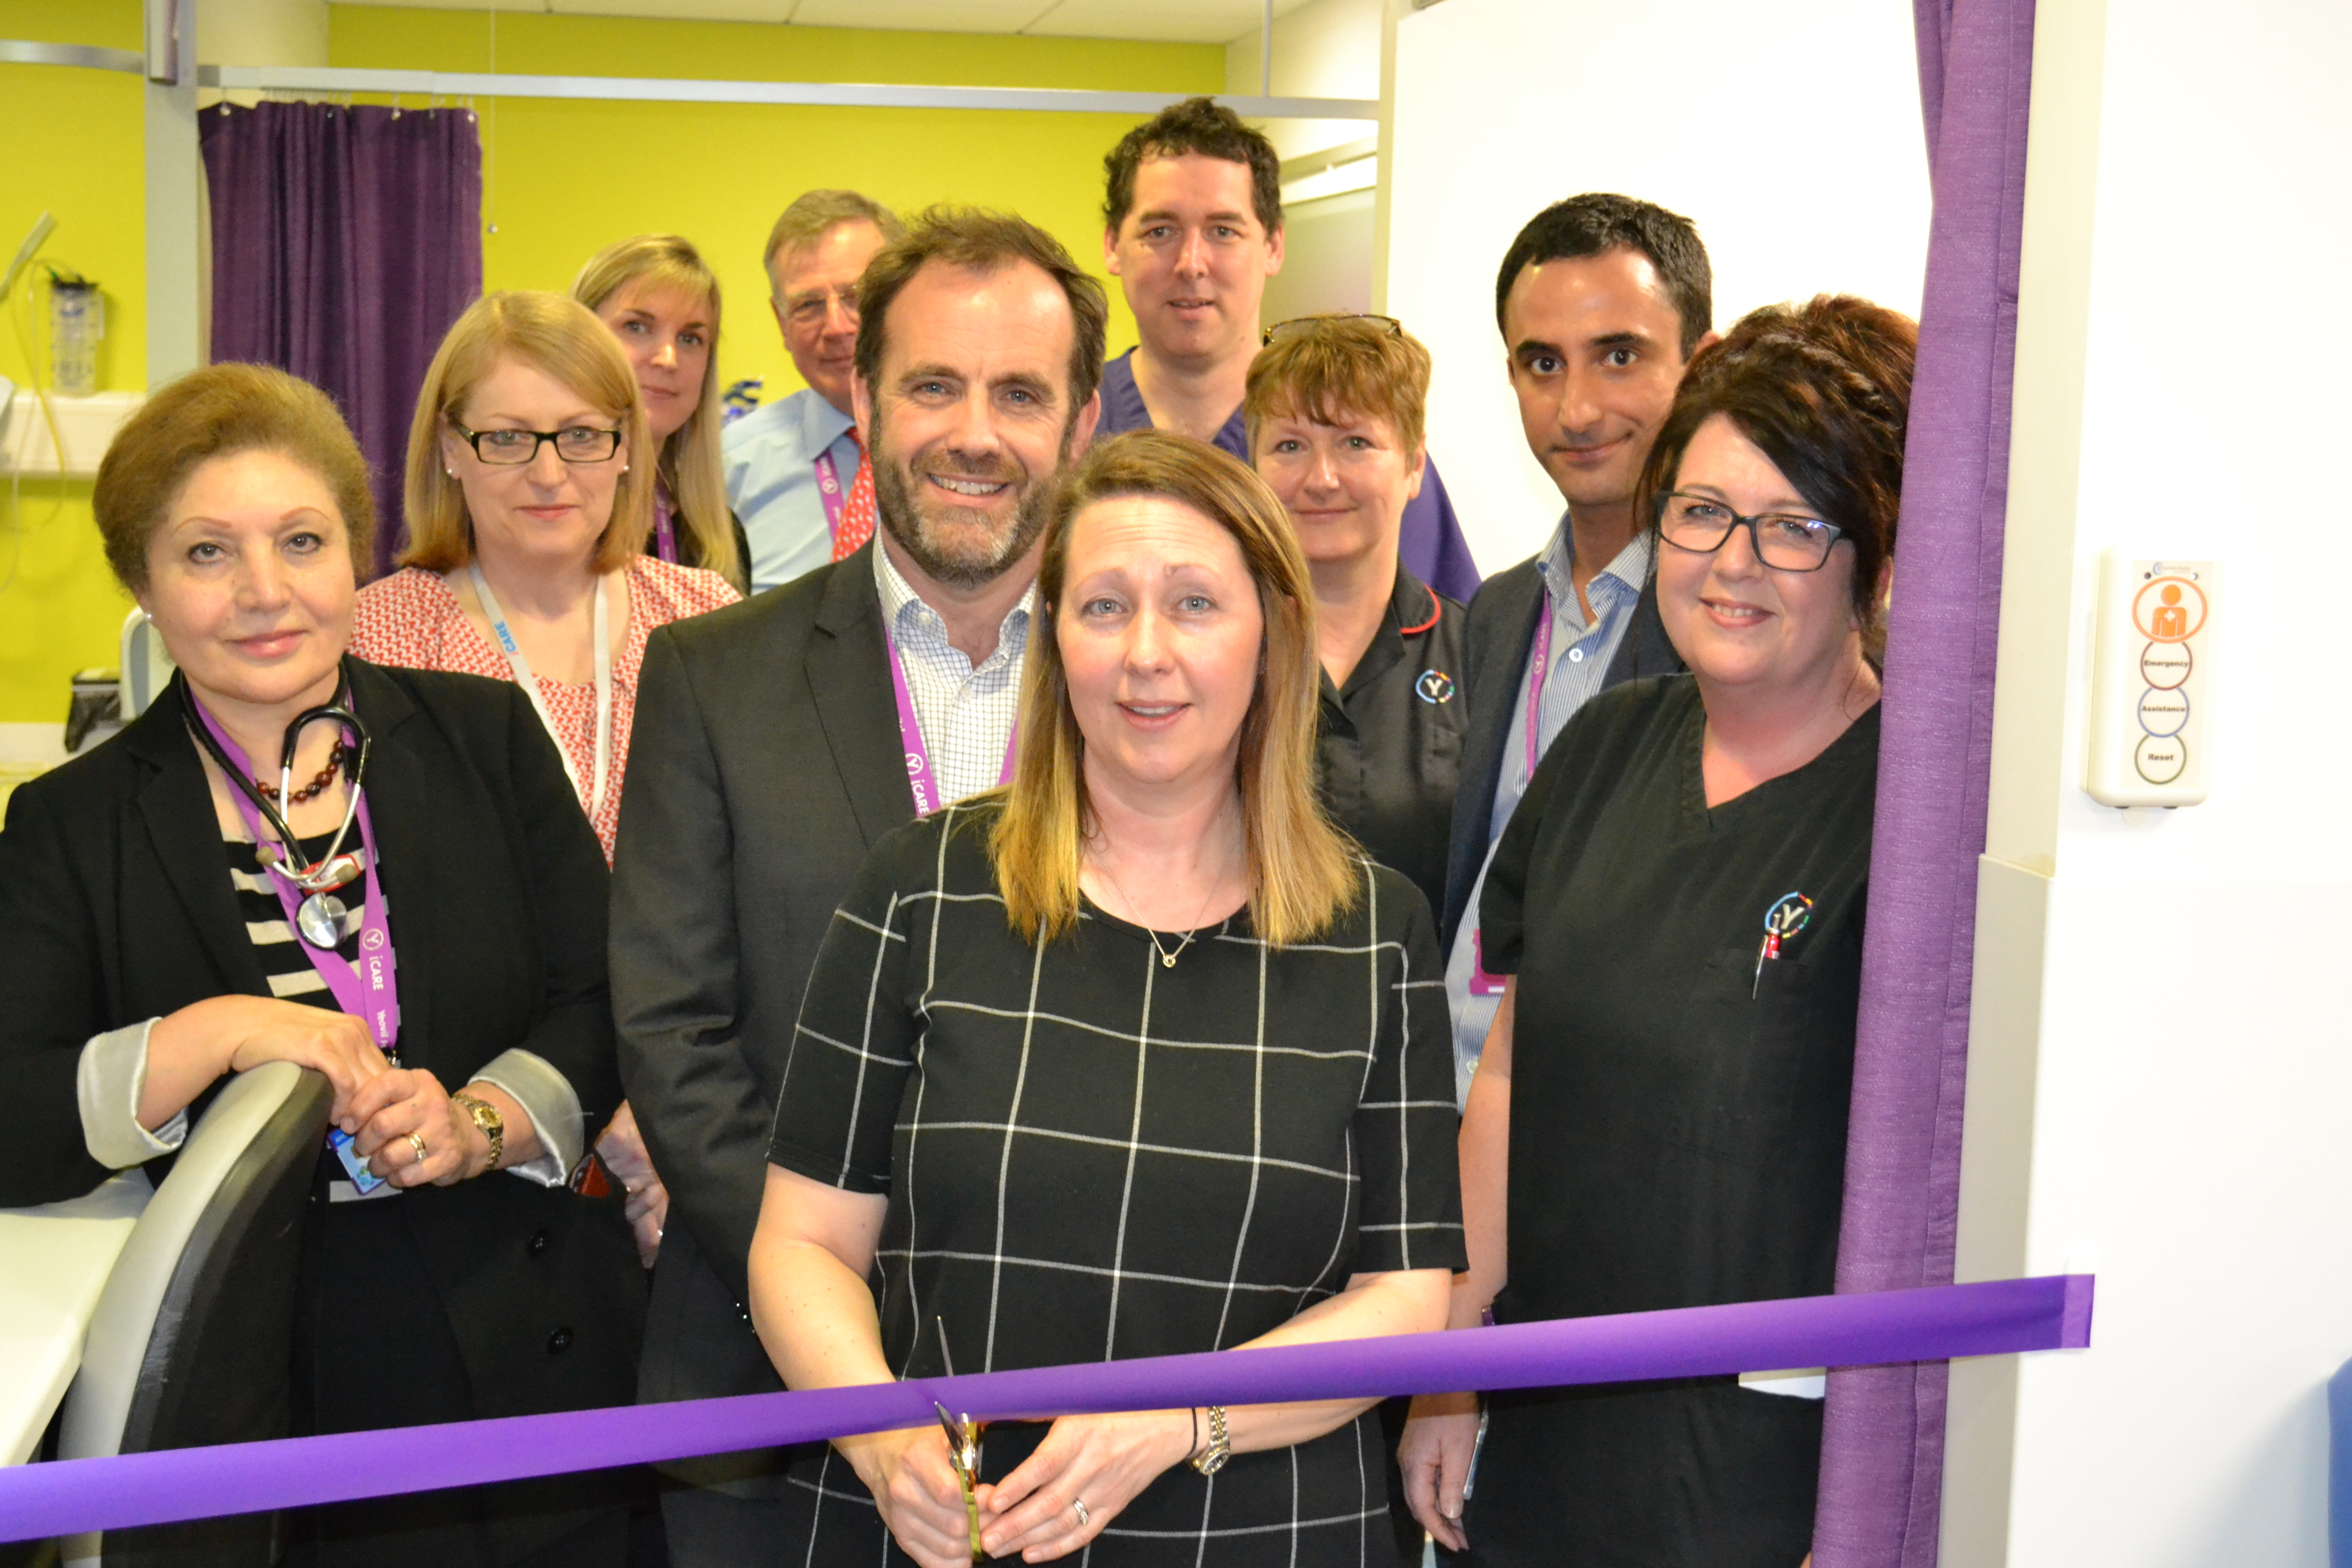 Julie Reeve (front right) and Paul Mears (centre) join Lisa Callow (front), wife of Wayne Callow, in opening the Ambulatory Emergency Care (AEC) Unit at Yeovil Hospital.